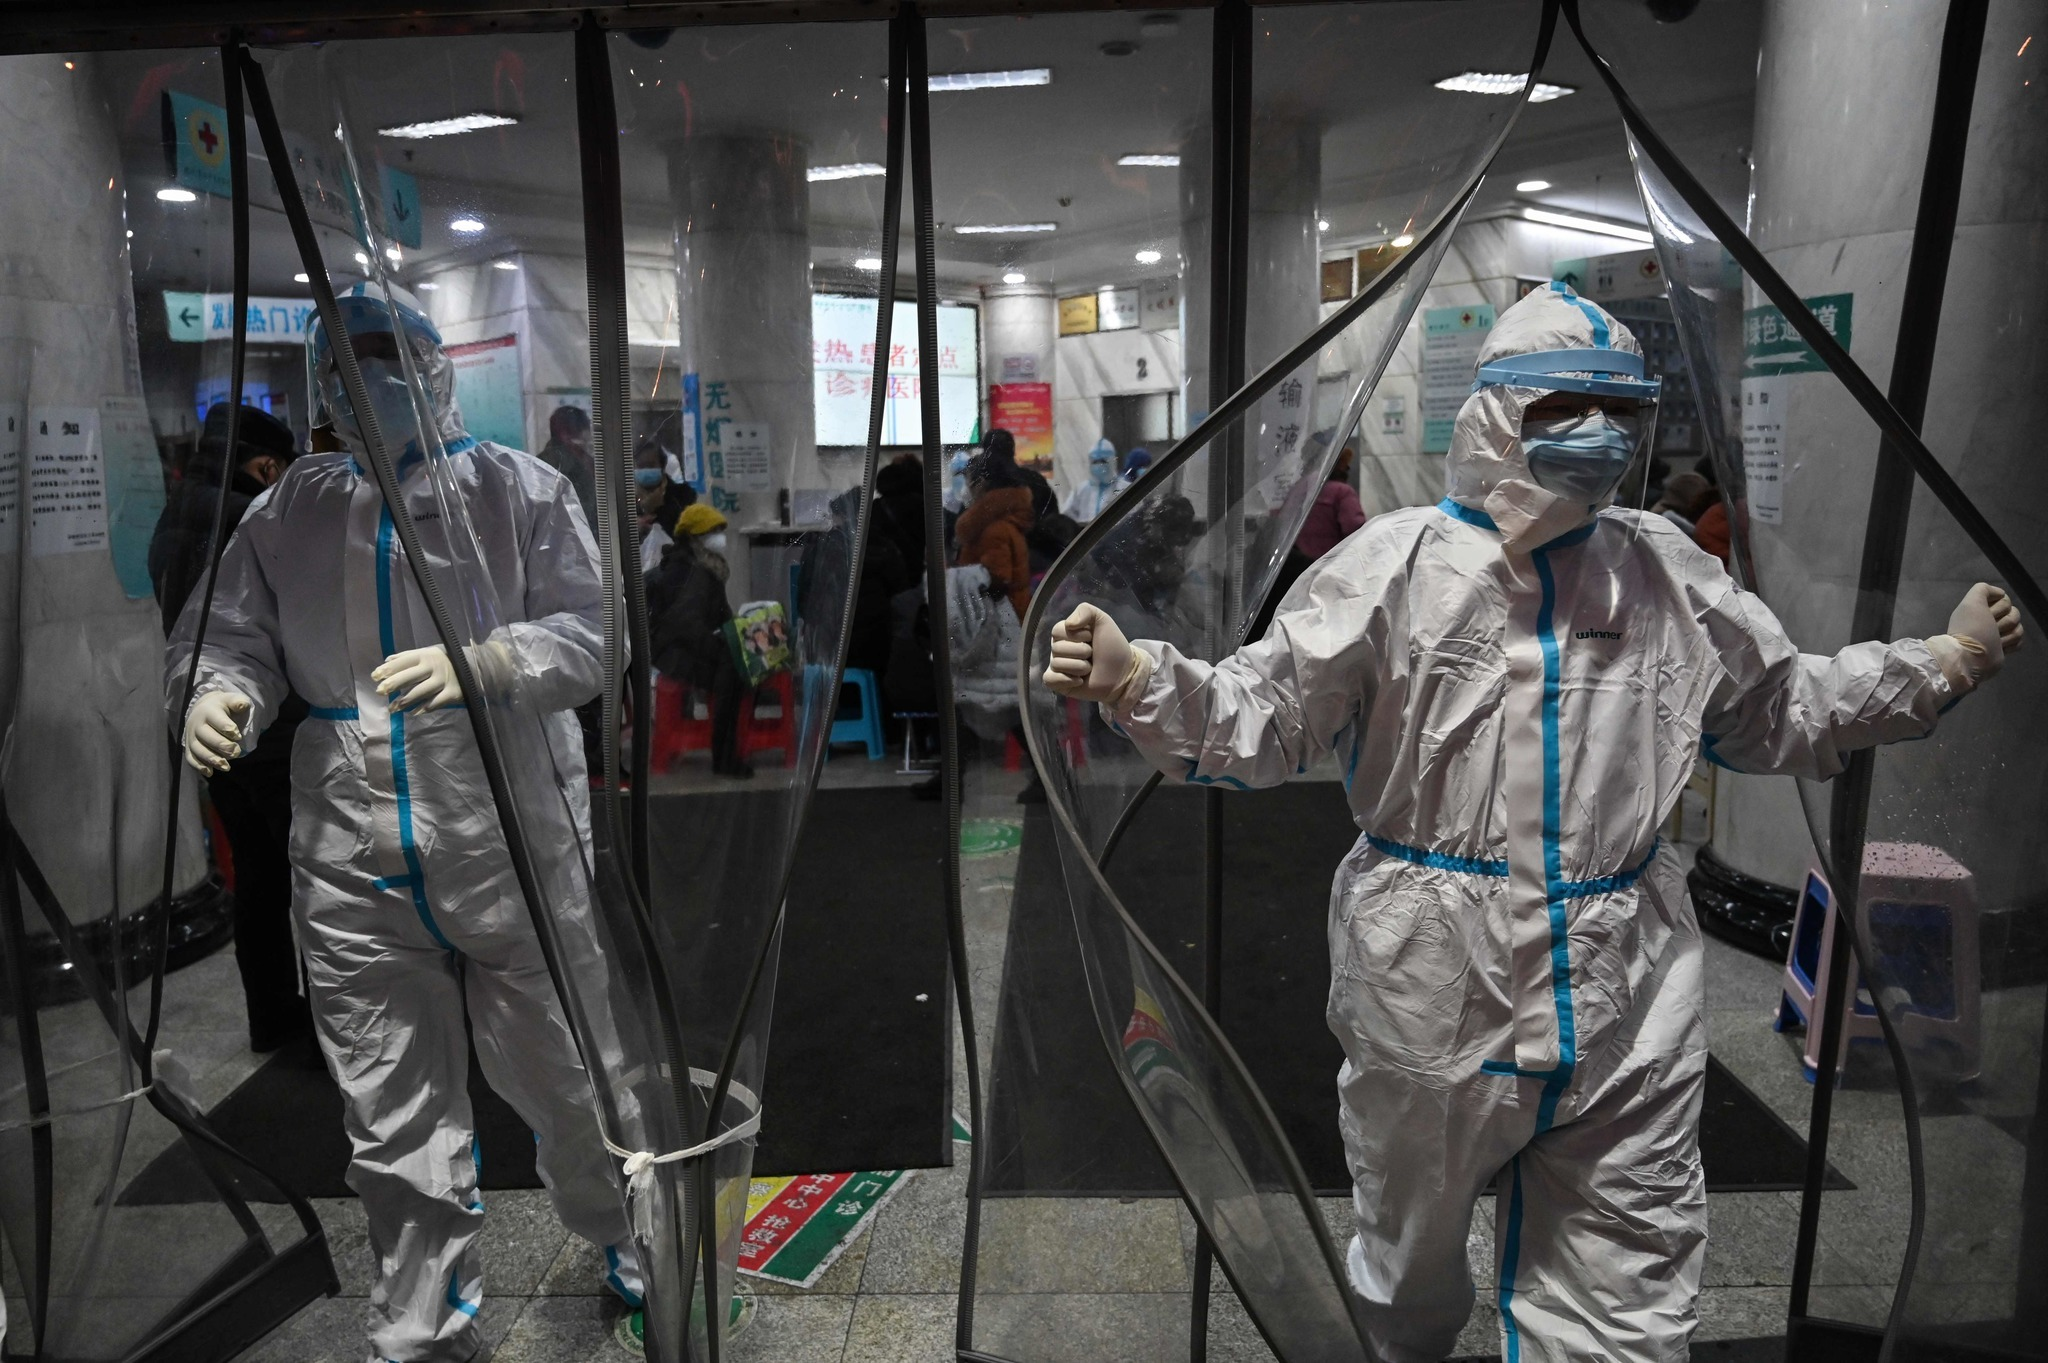 New York 'ready' to snuff coronavirus when it lands thanks to training, technology and 'secret shoppers'